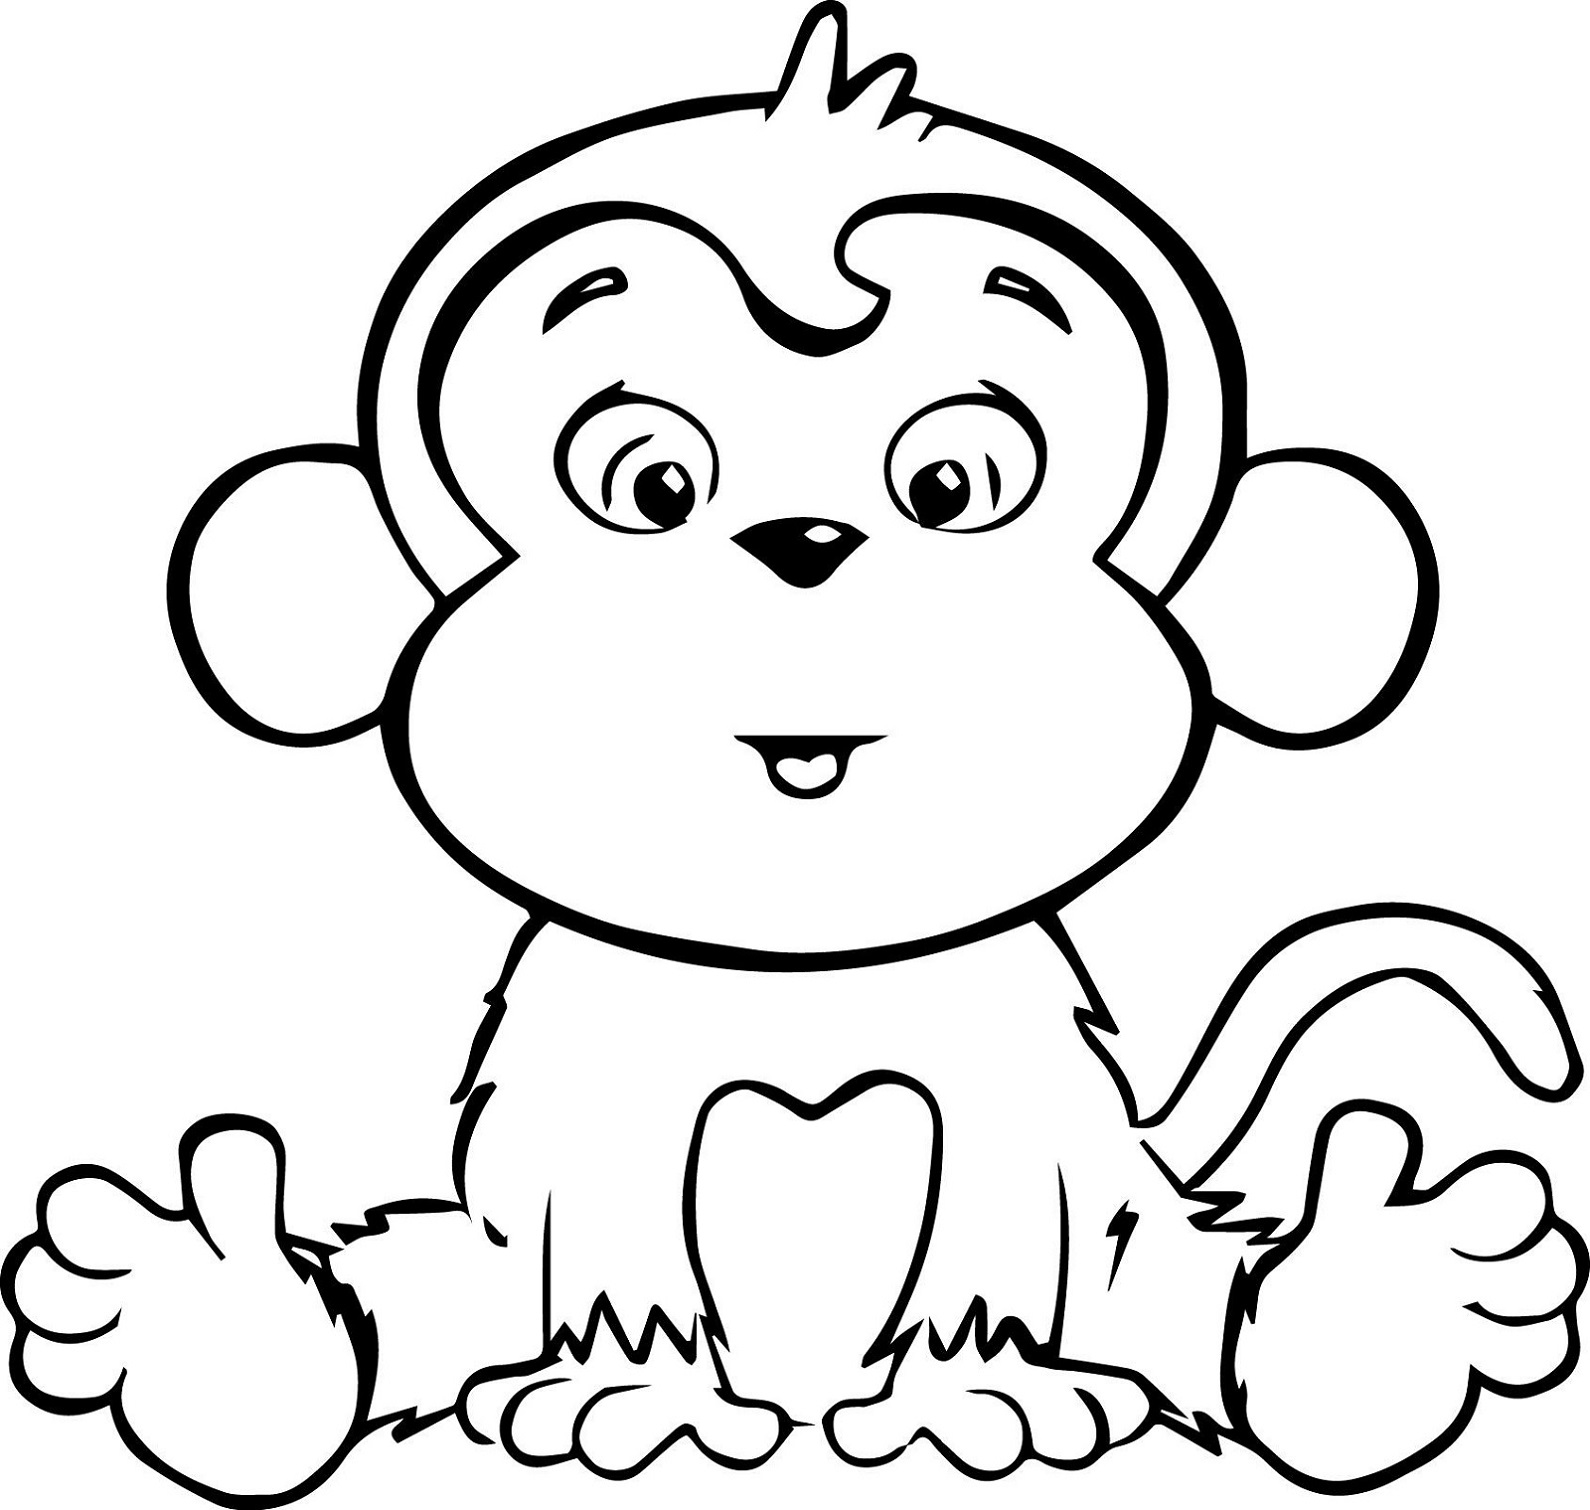 monkey pictures to color top 25 free printable monkey coloring pages for kids pictures color to monkey